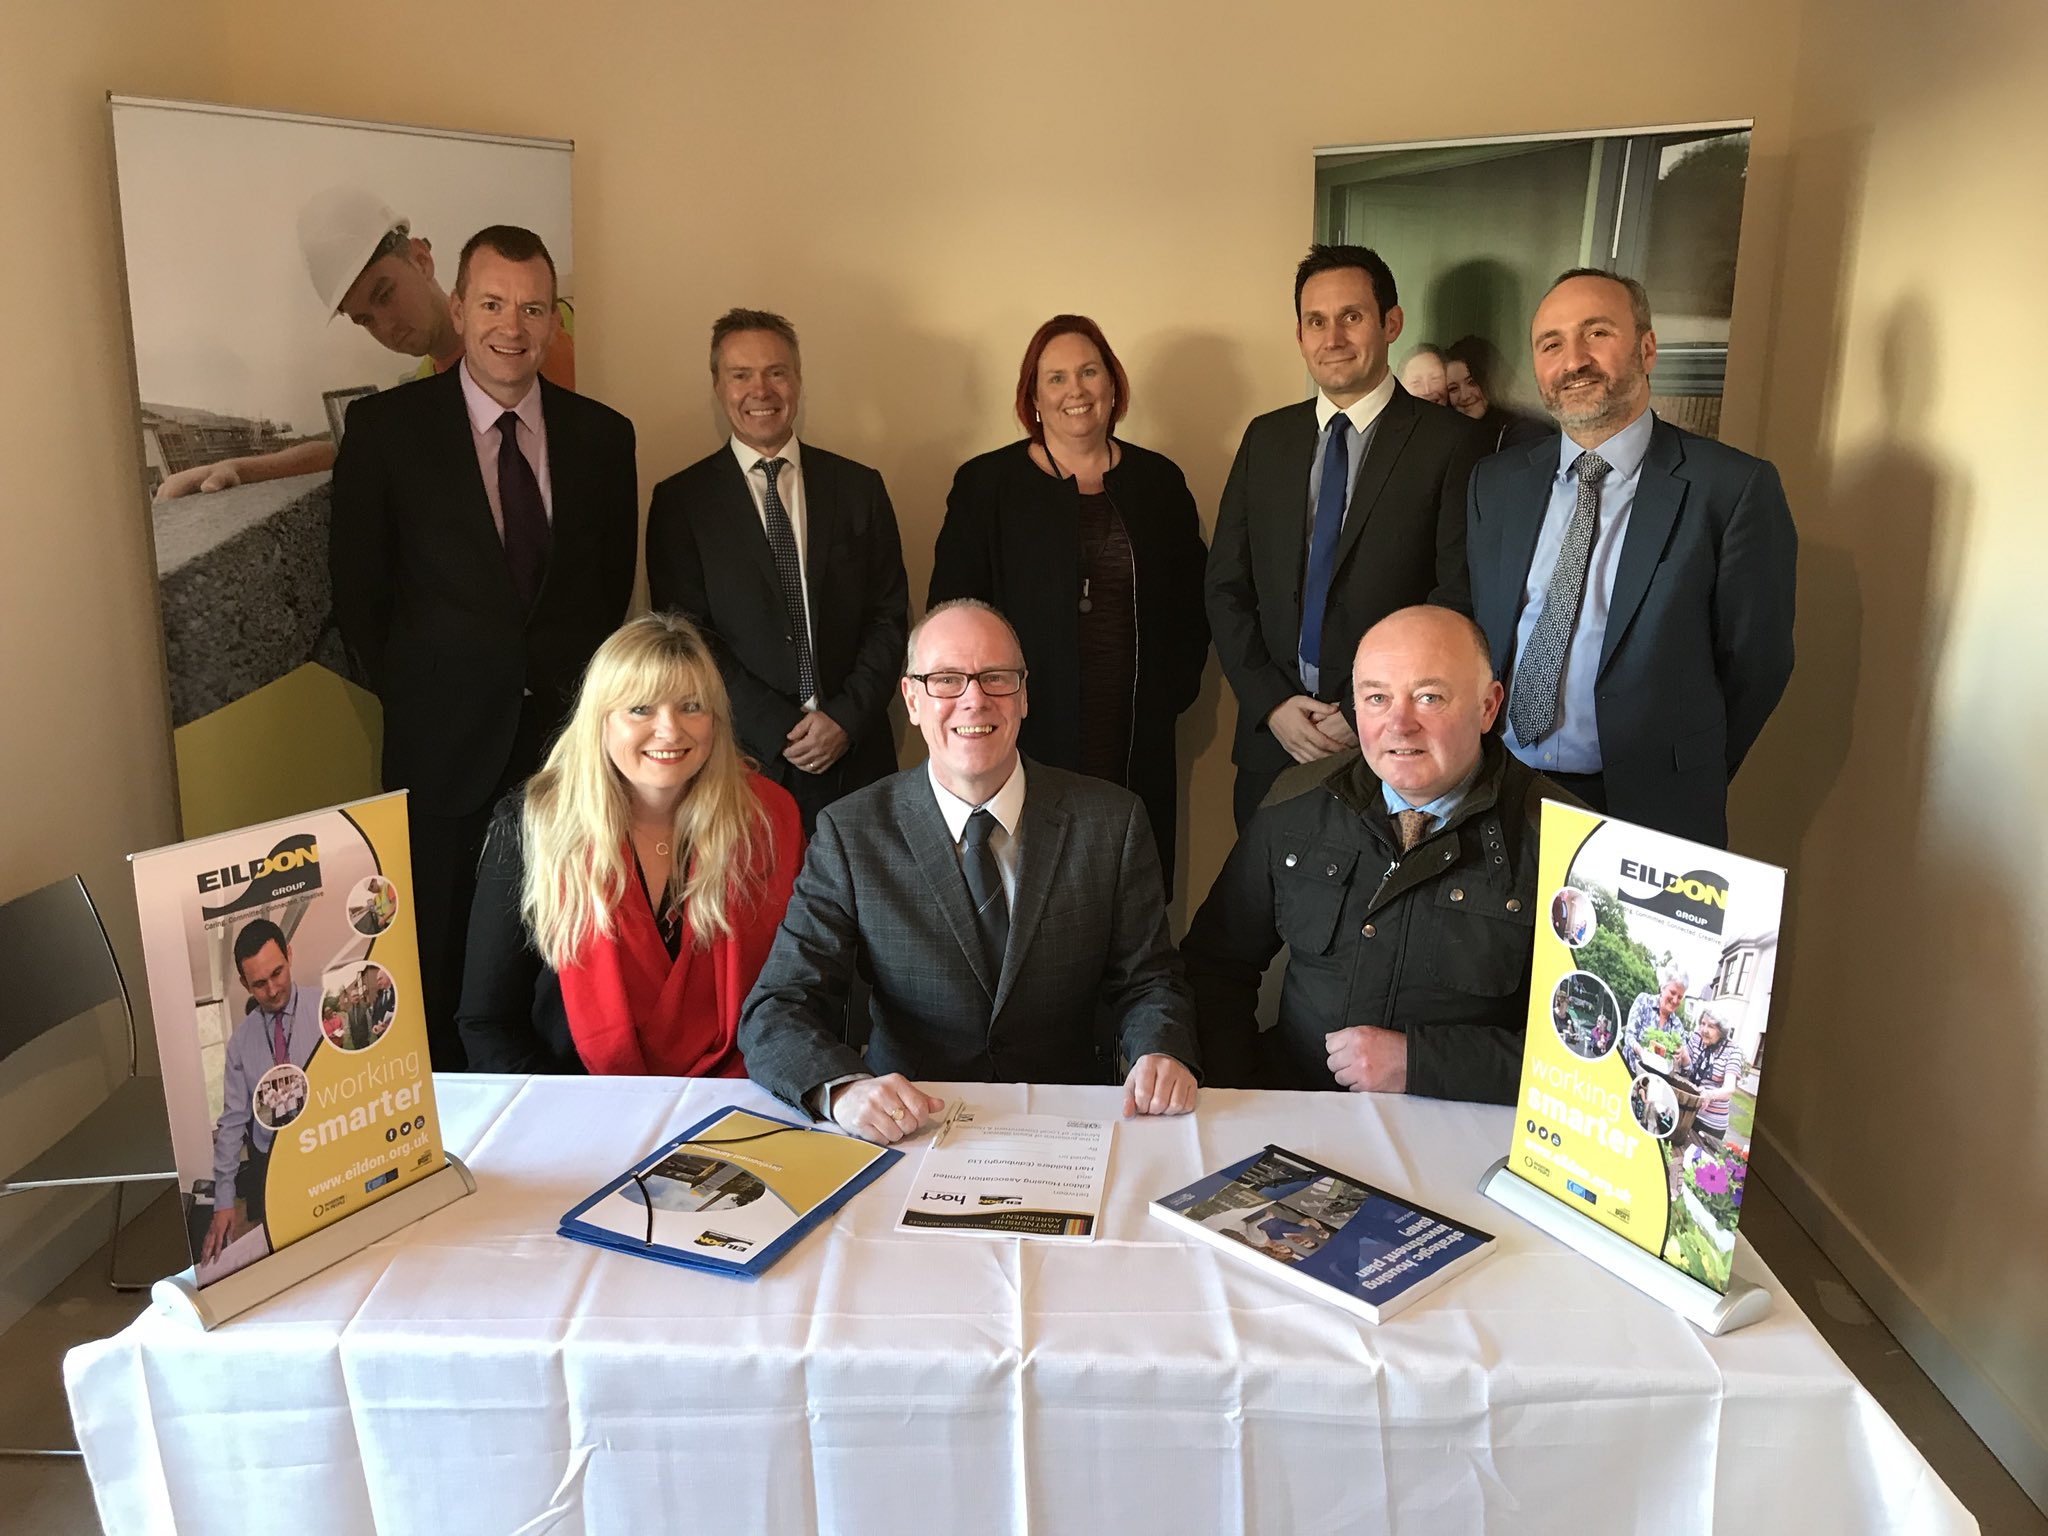 Minister for Local Government & Housing Supports Innovative Partnership Agreement between Eildon Group and Hart Builders